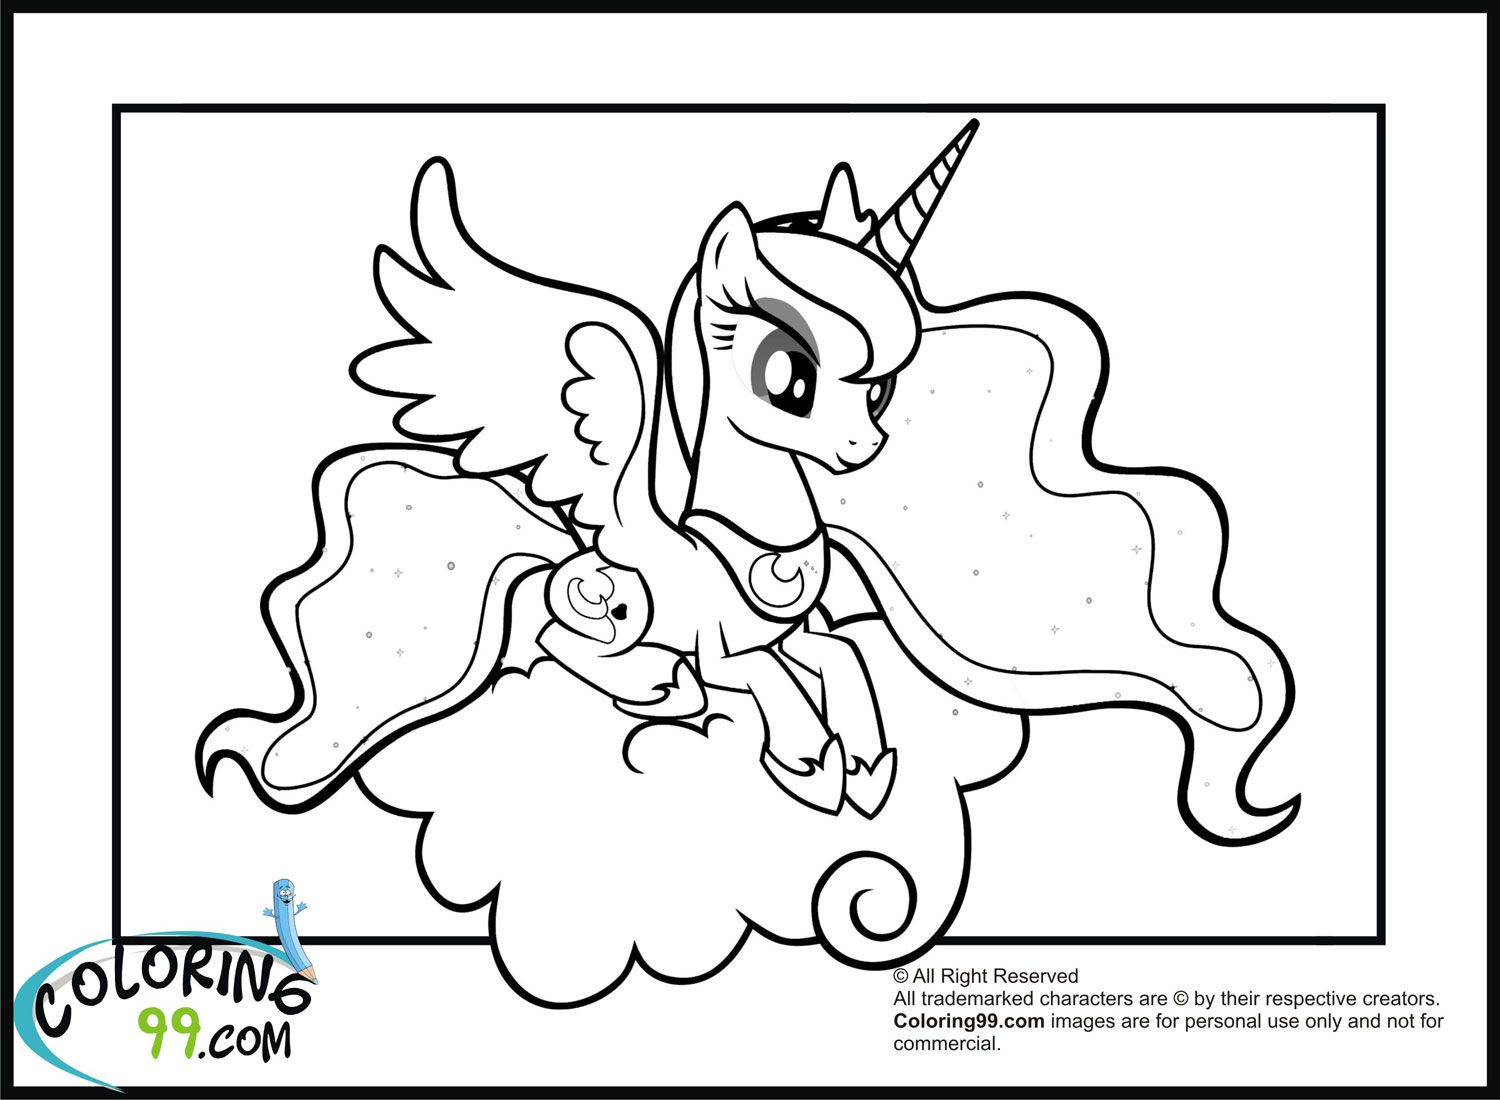 Coloring Pages Of Princess Luna : My little pony princess luna coloring pages activities